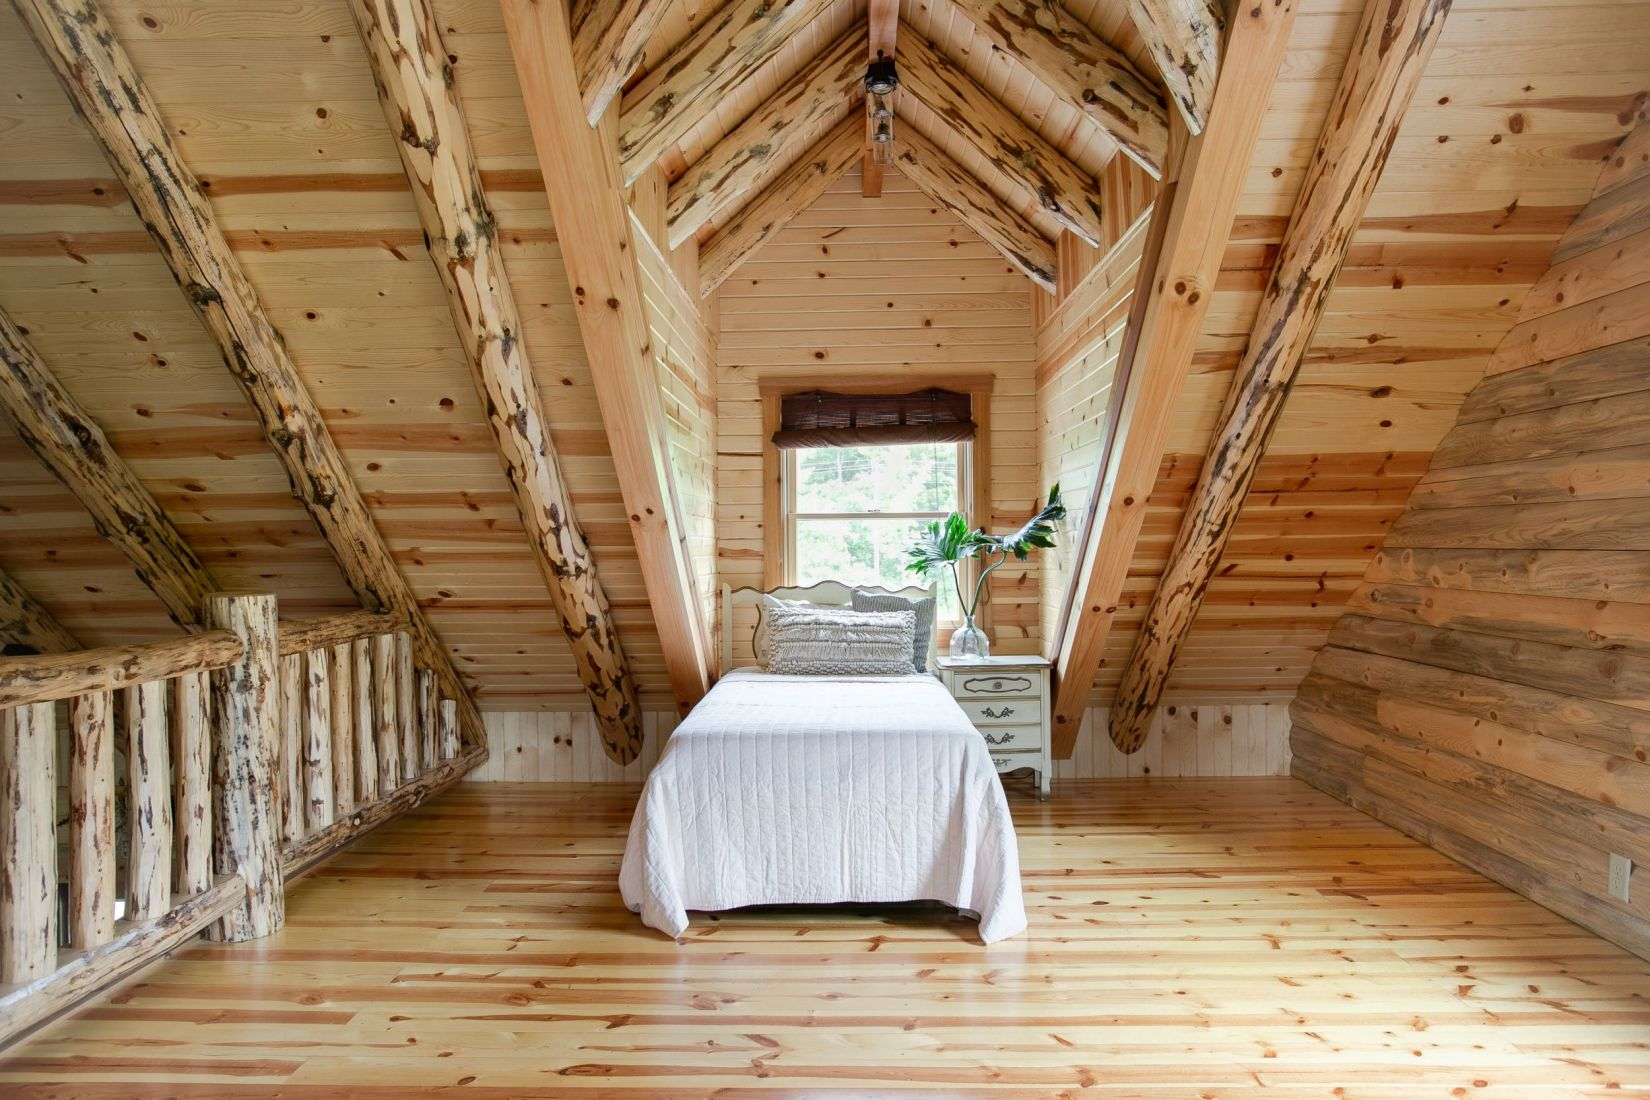 Loft Area Bedroom in Log Home